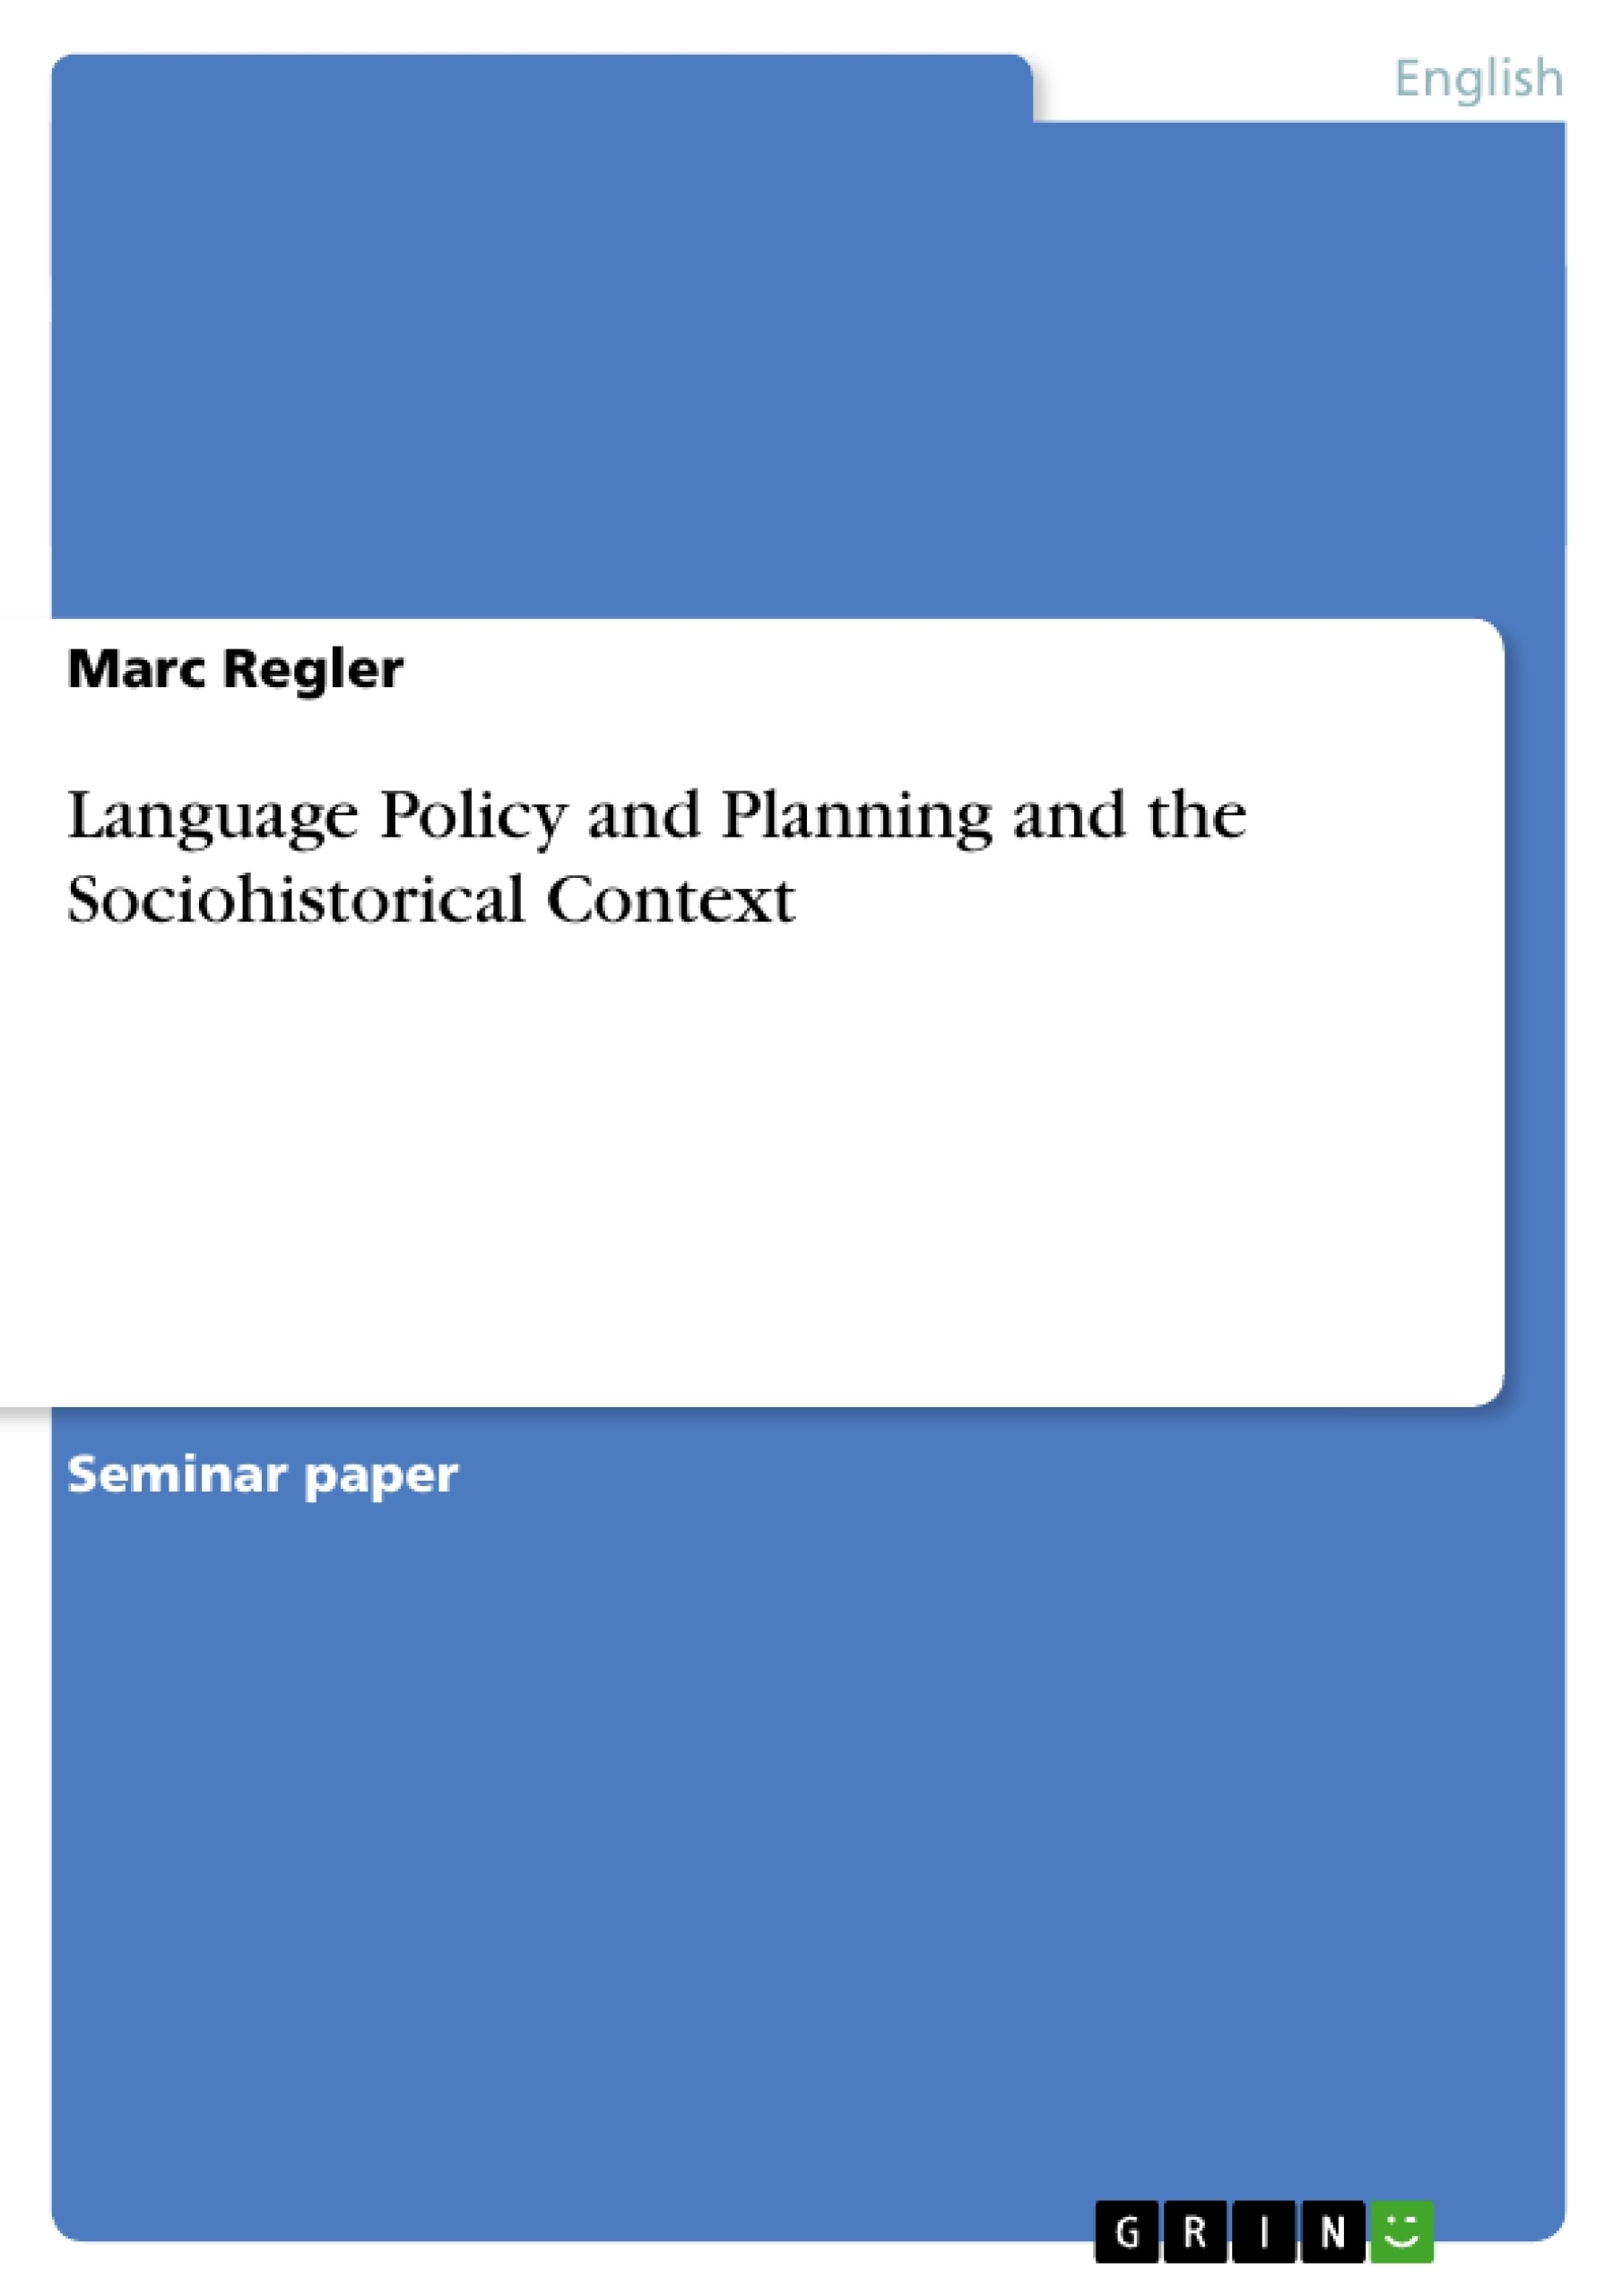 Title: Language Policy and Planning and the Sociohistorical Context